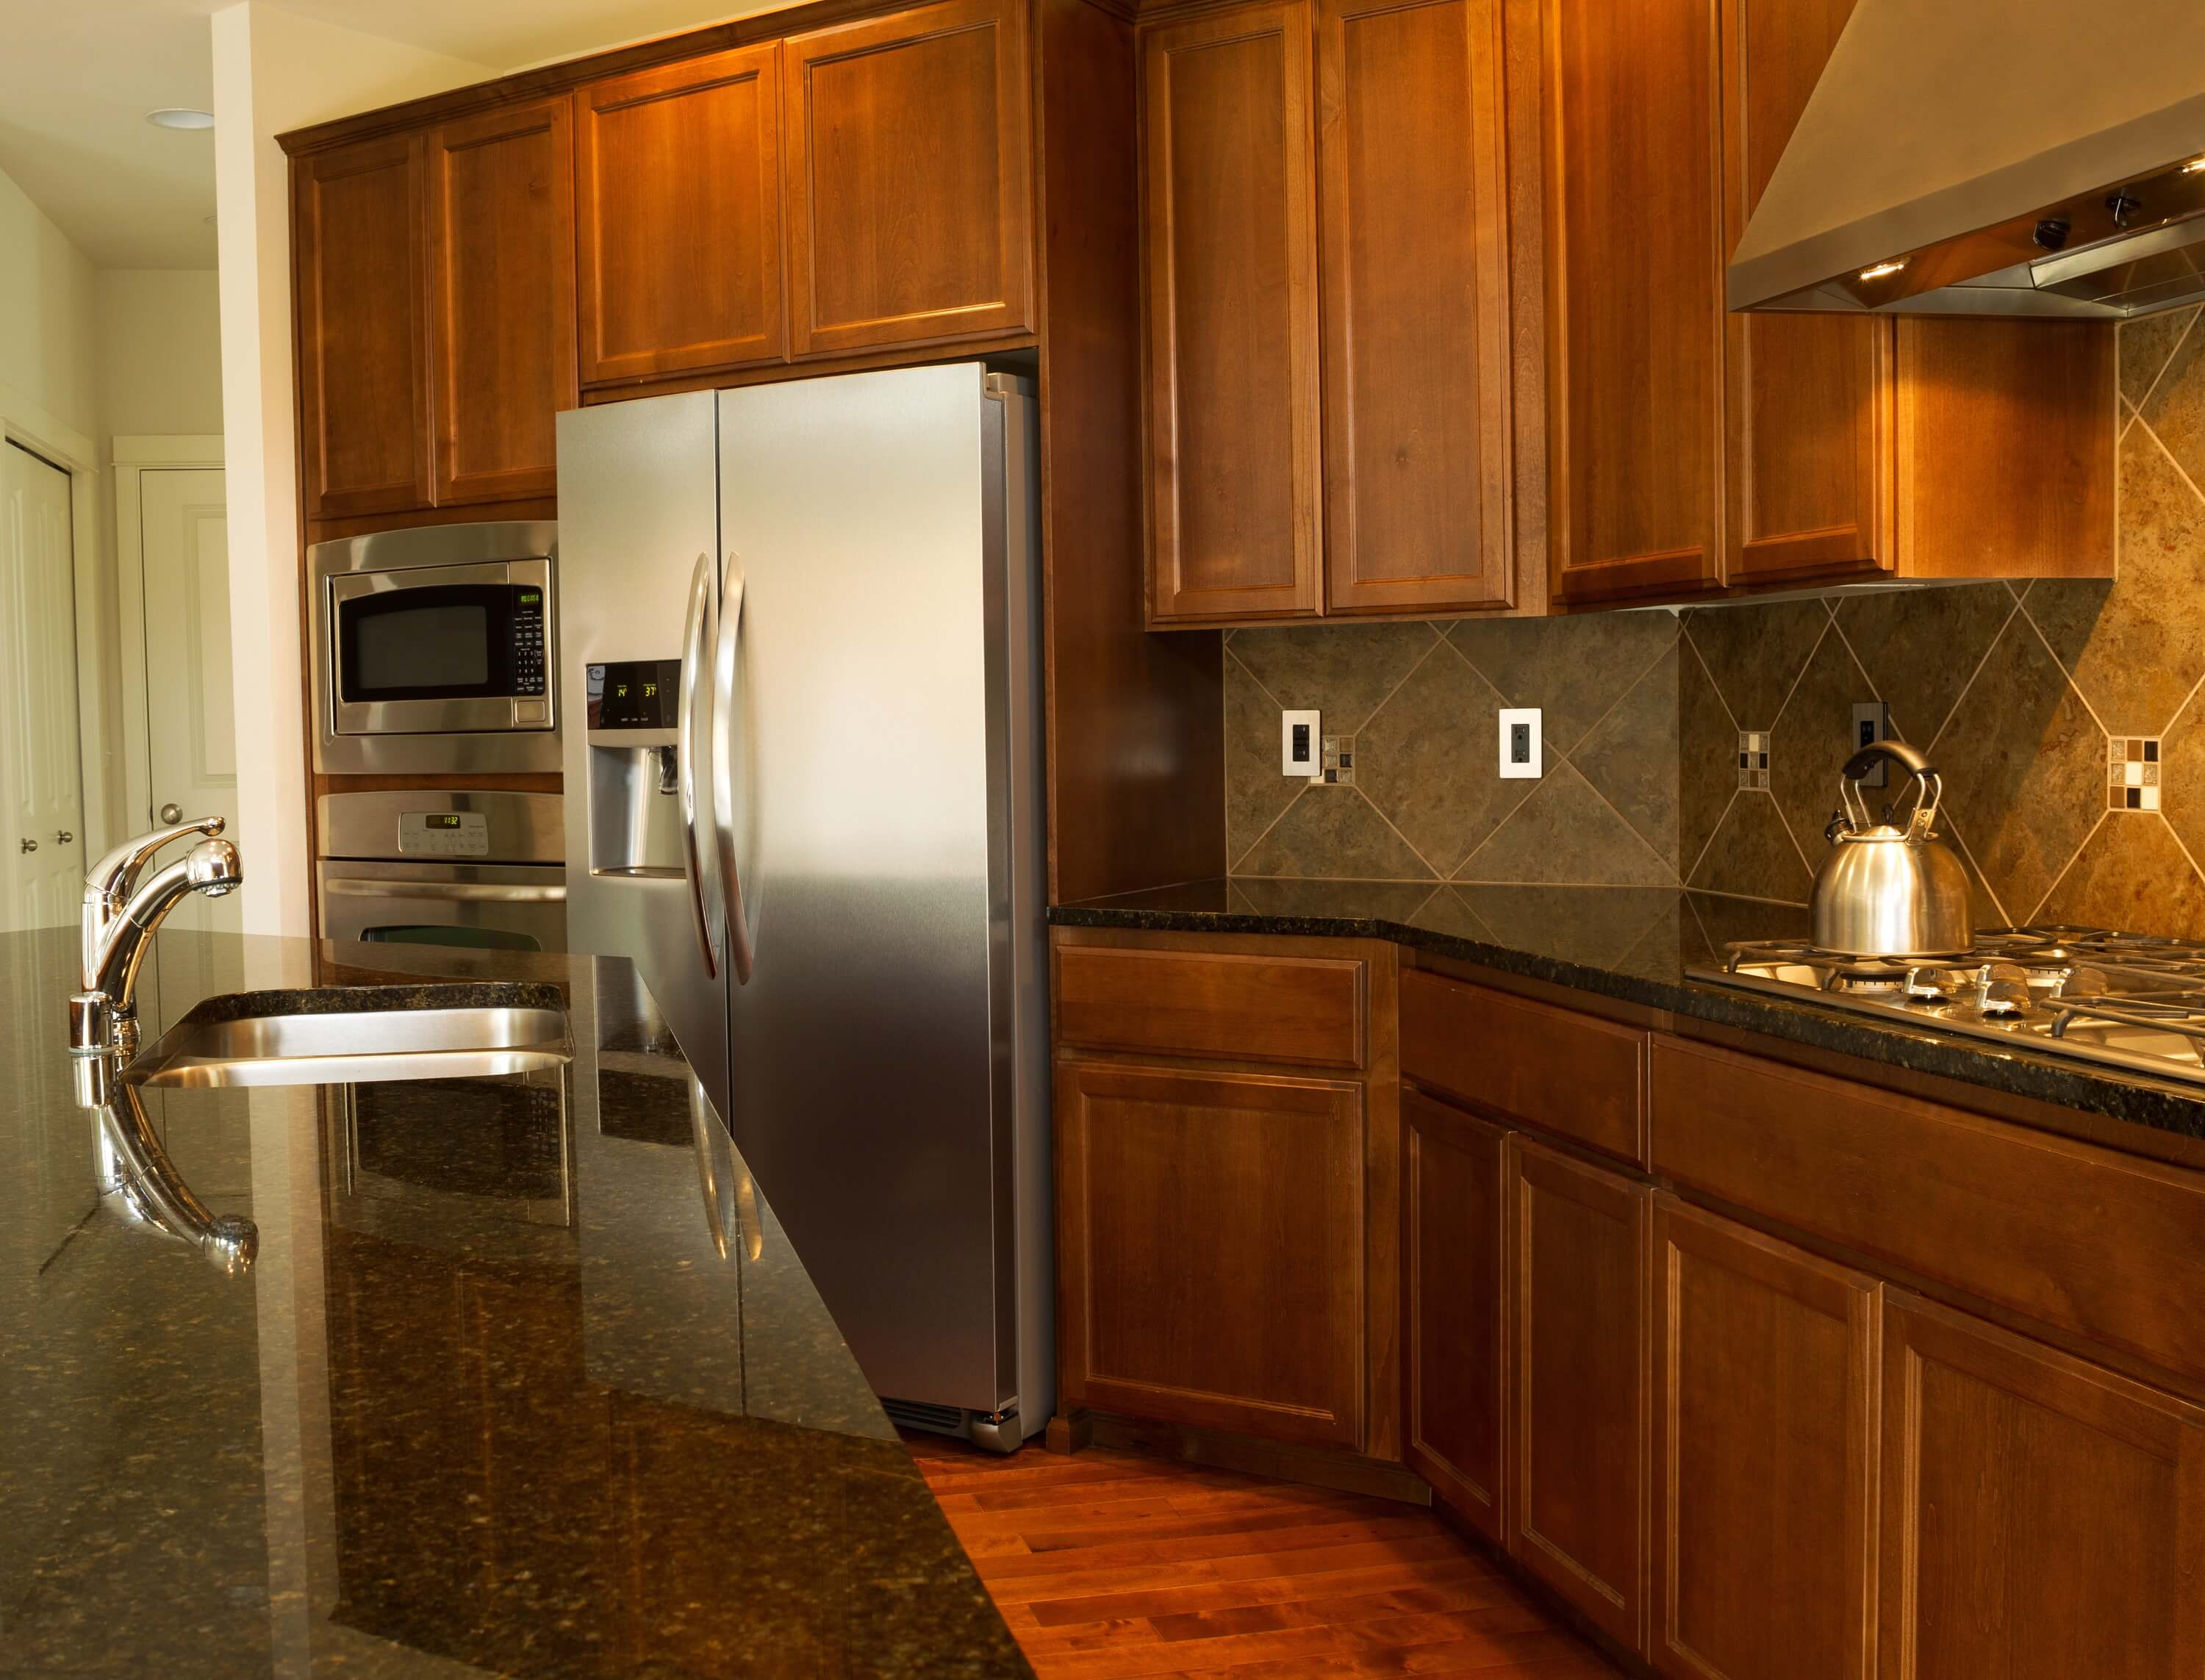 3 Reasons You Need New Kitchen Cabinets